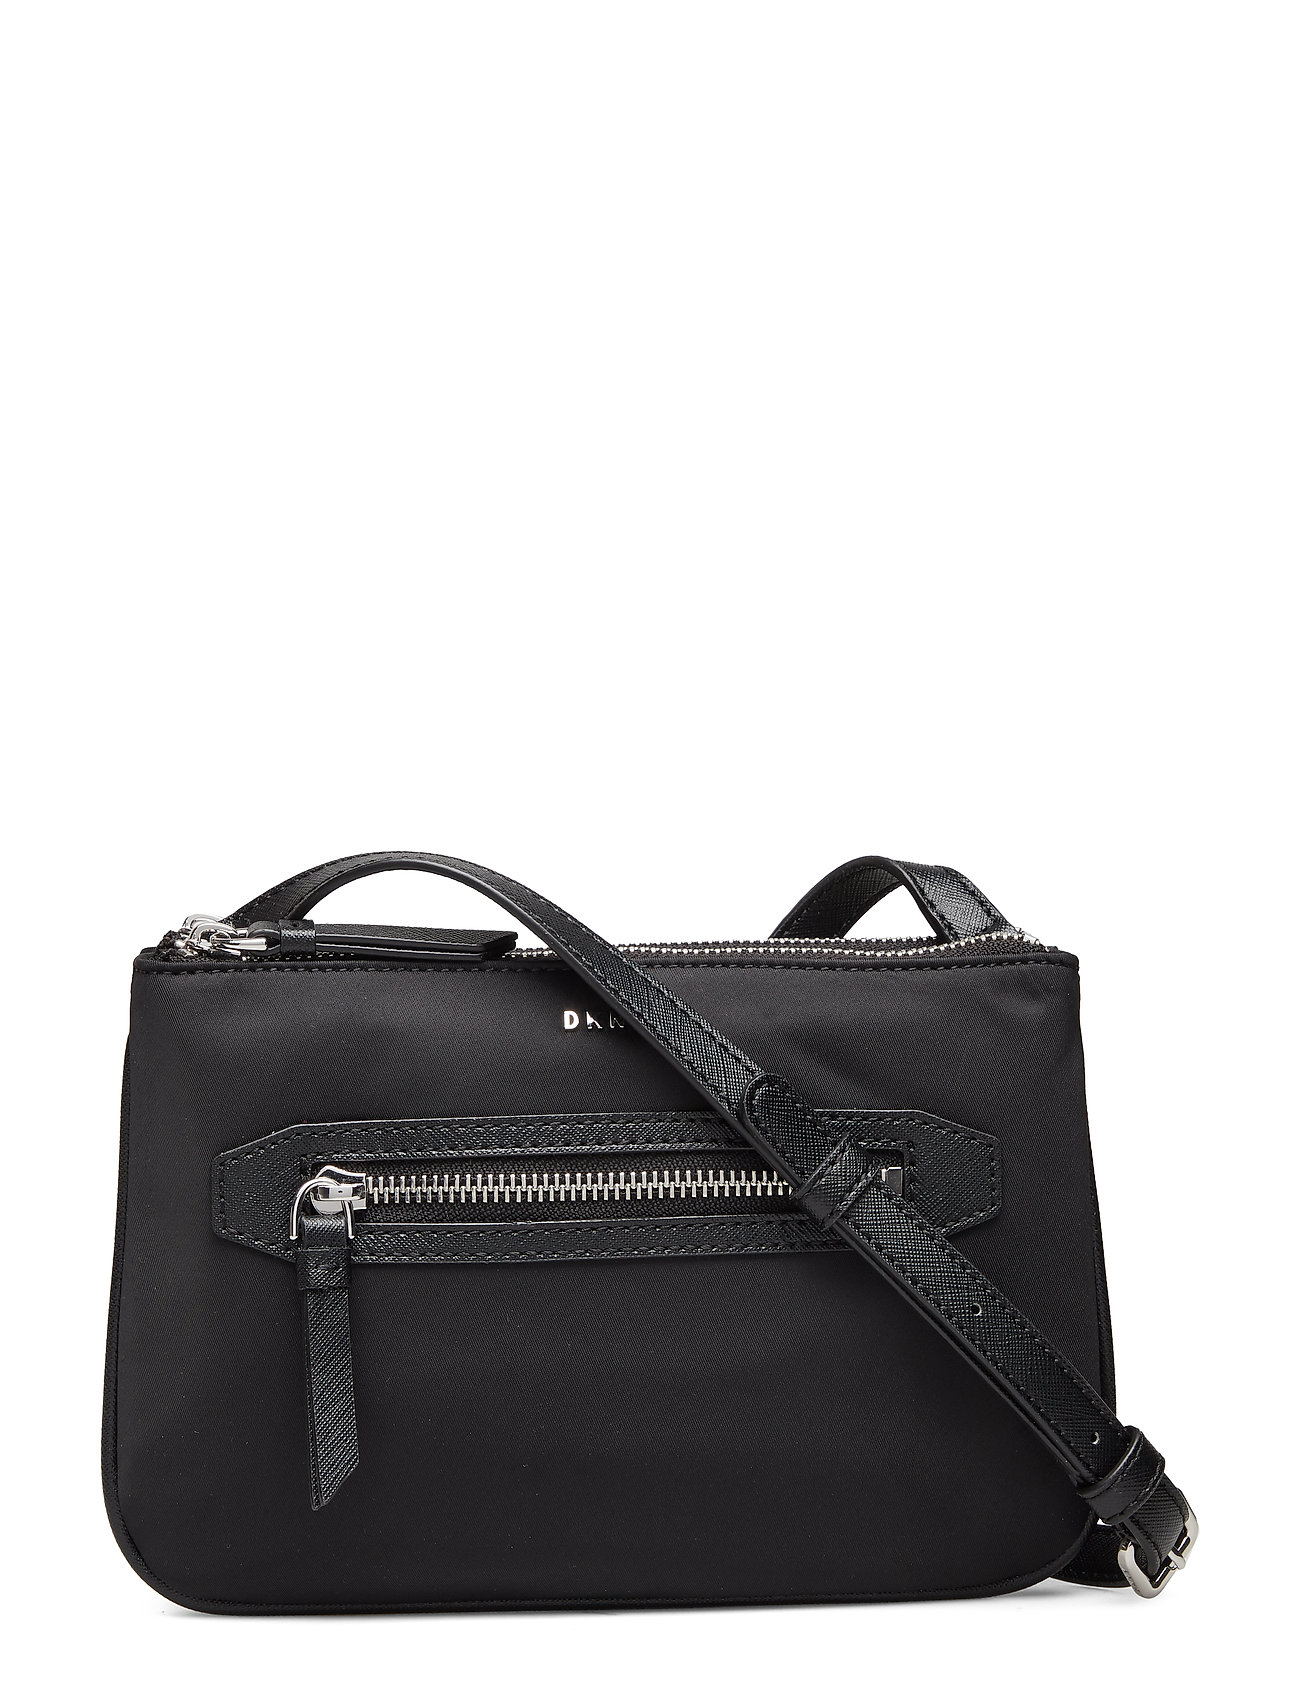 DKNY Casey-Dbl Pouch Cbod Bags Small Shoulder Bags/crossbody Bags Schwarz DKNY BAGS